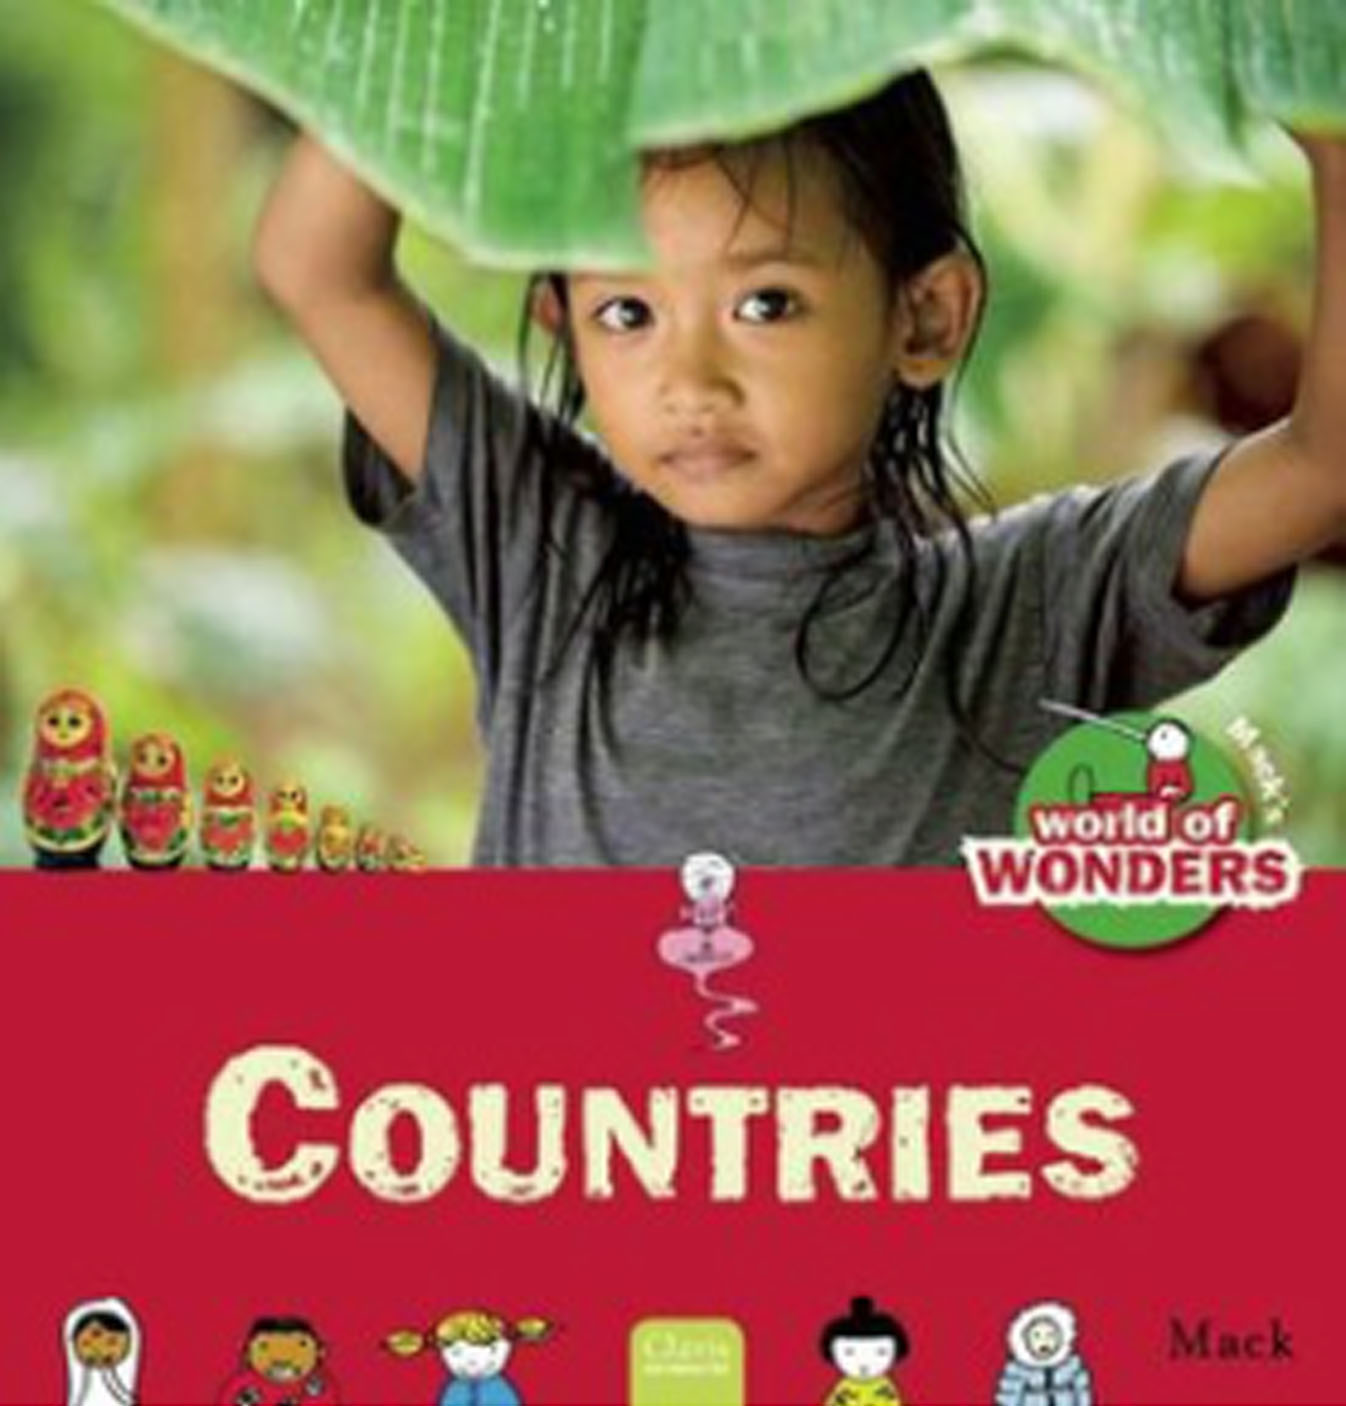 Book Buzz: Mack's World of Wonder- Countries